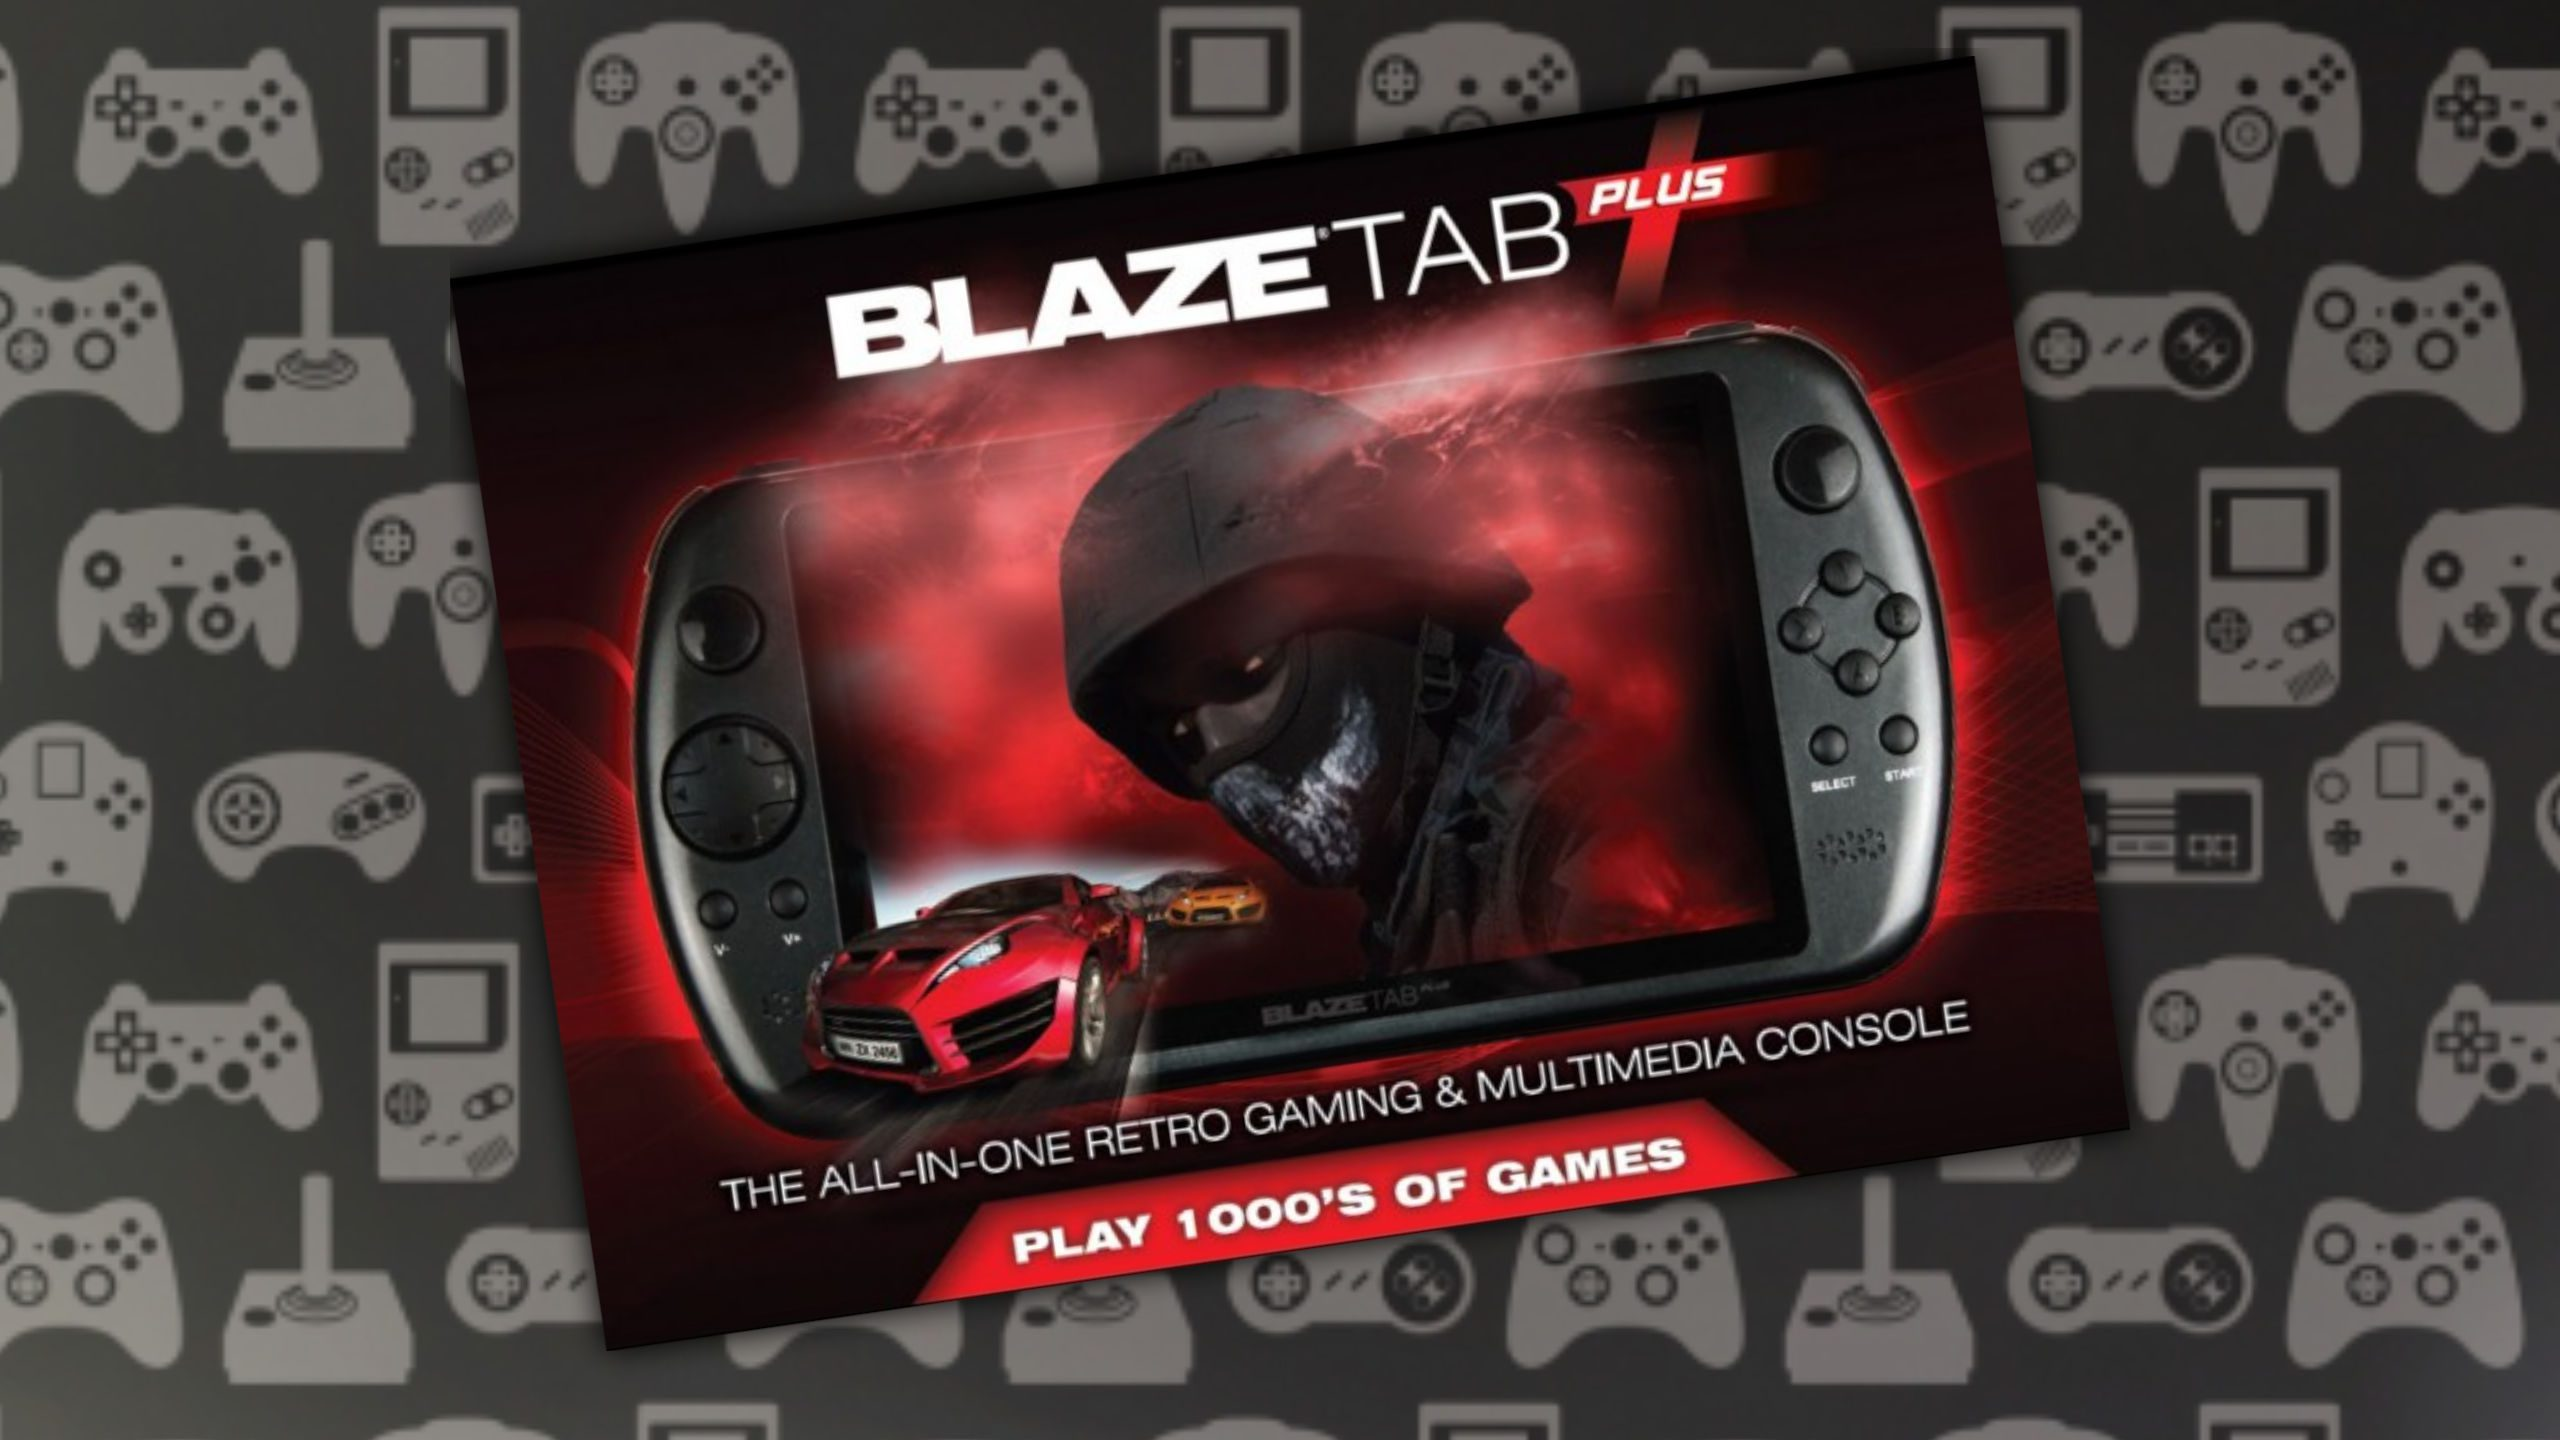 Retro Gaming System that Fits in Your Pocket? BlazeTab Plus Review